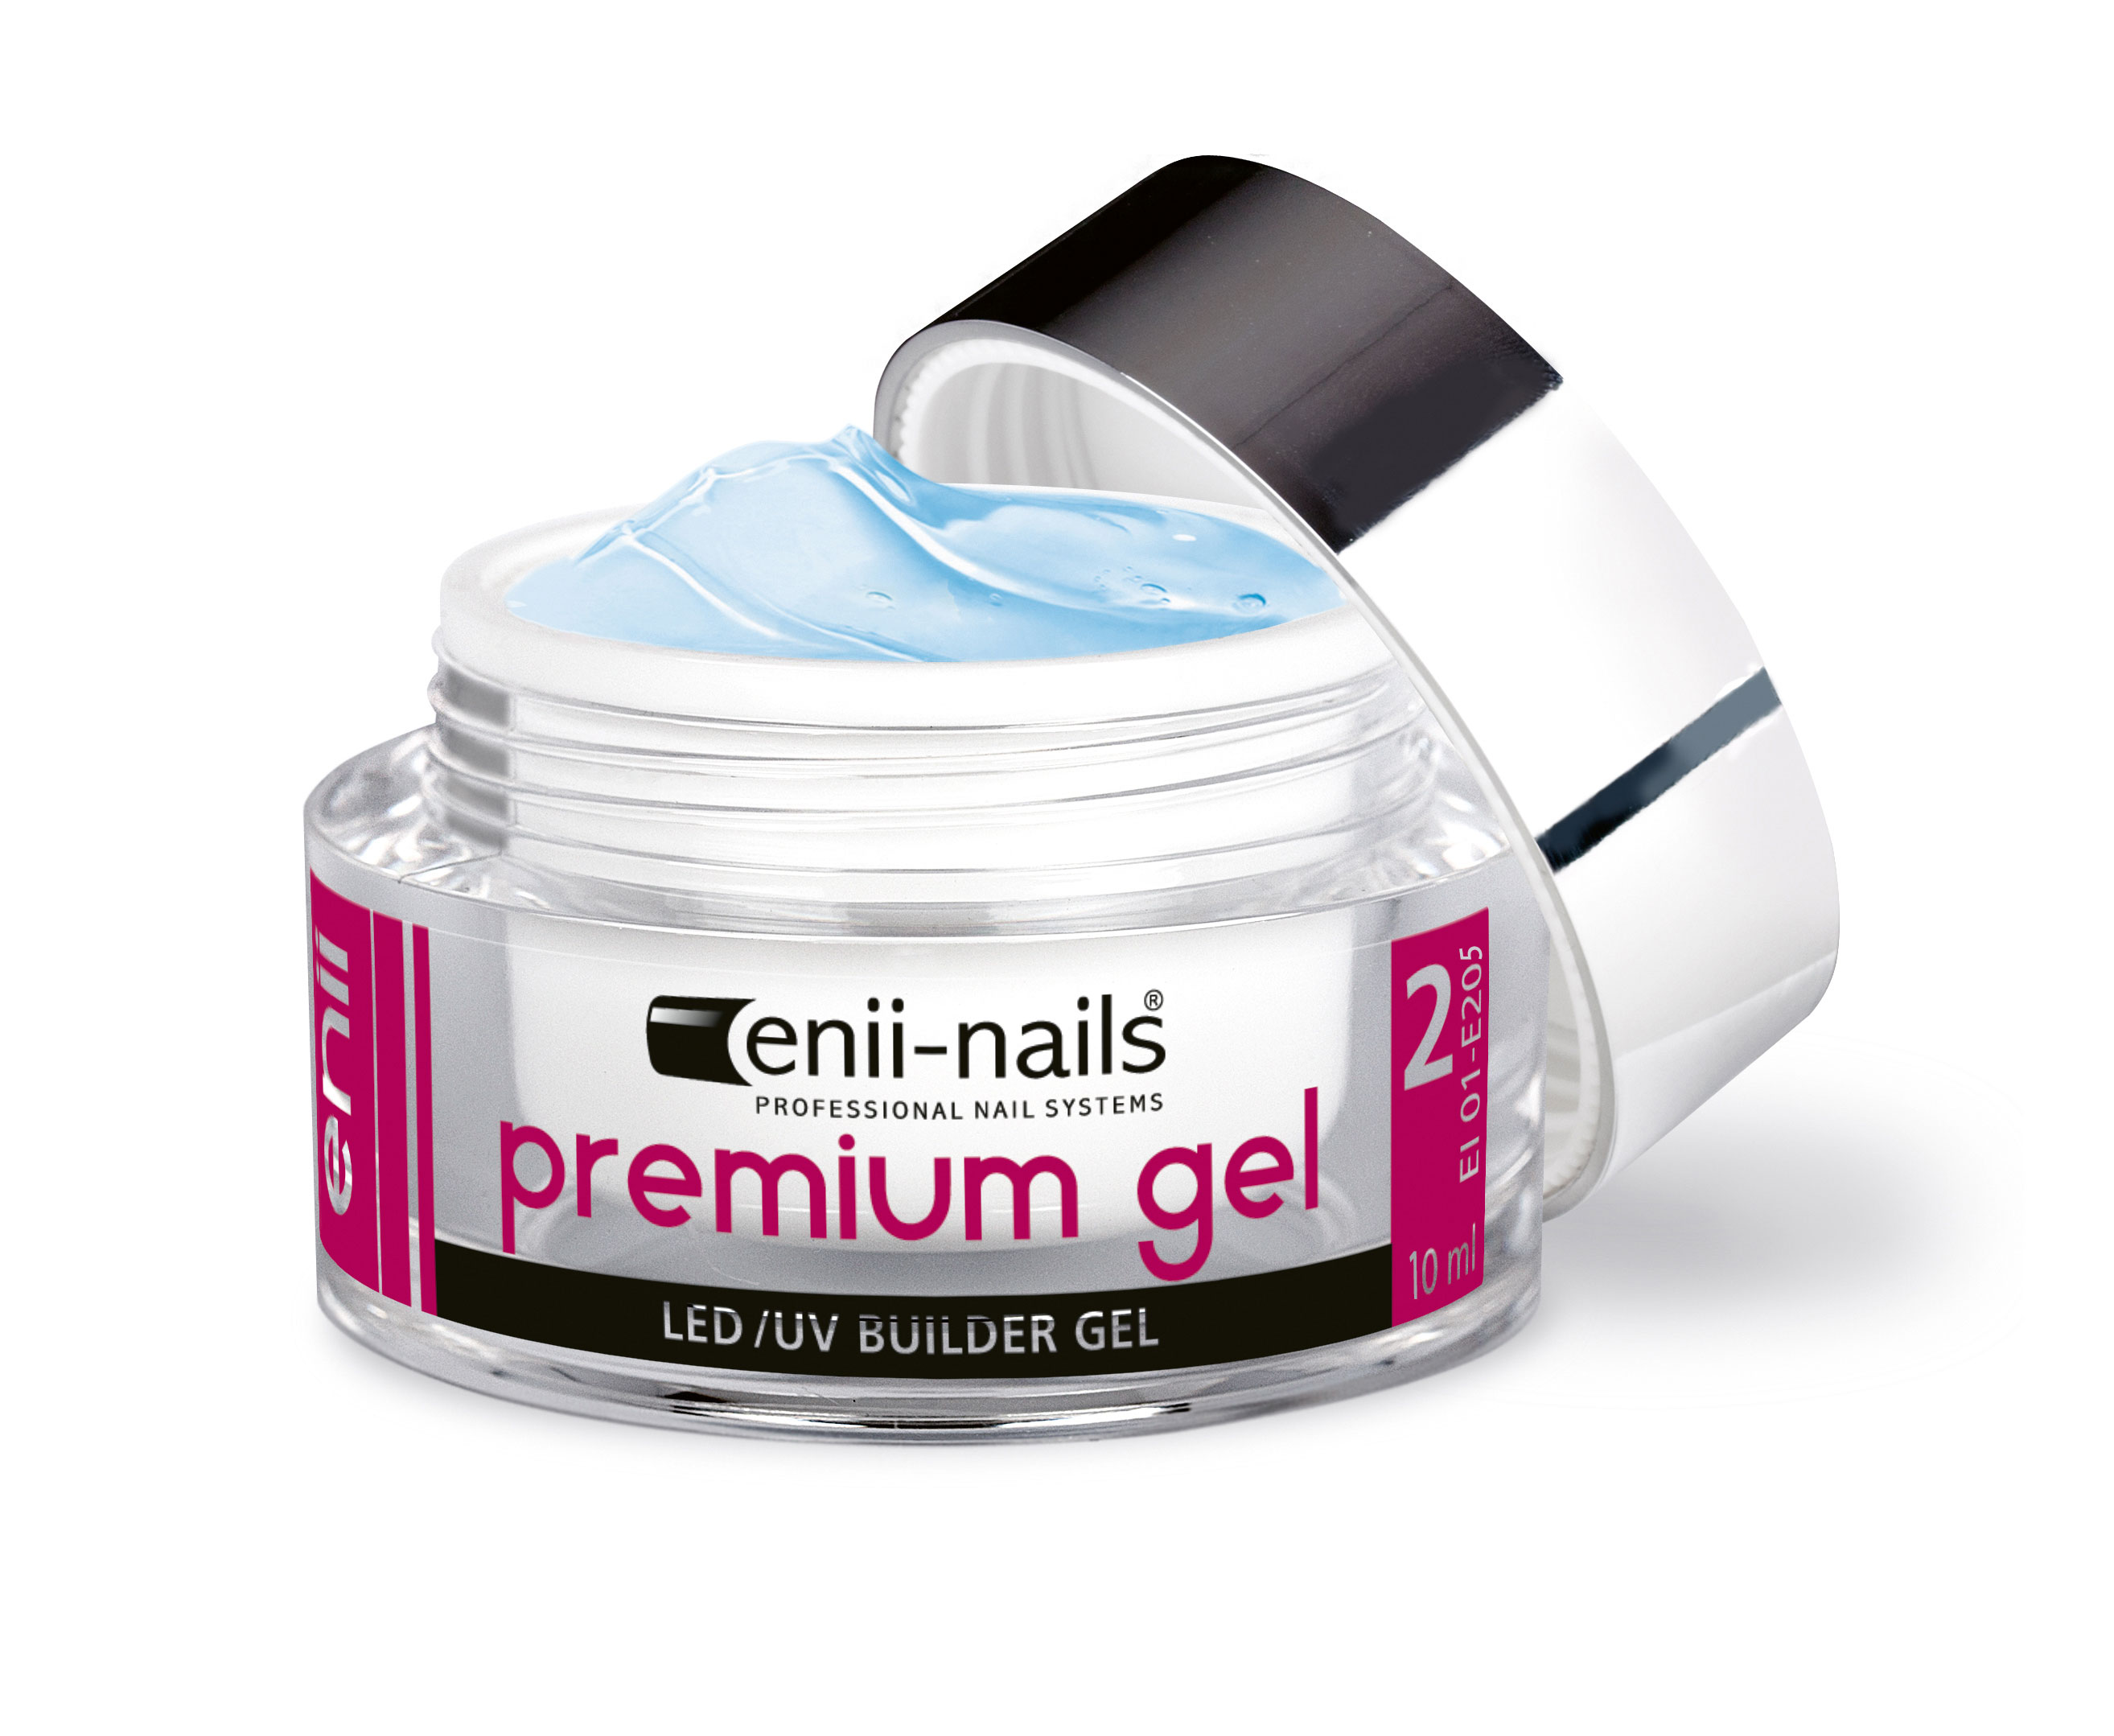 ENII-NAILS ENII PREMIUM 10 ml